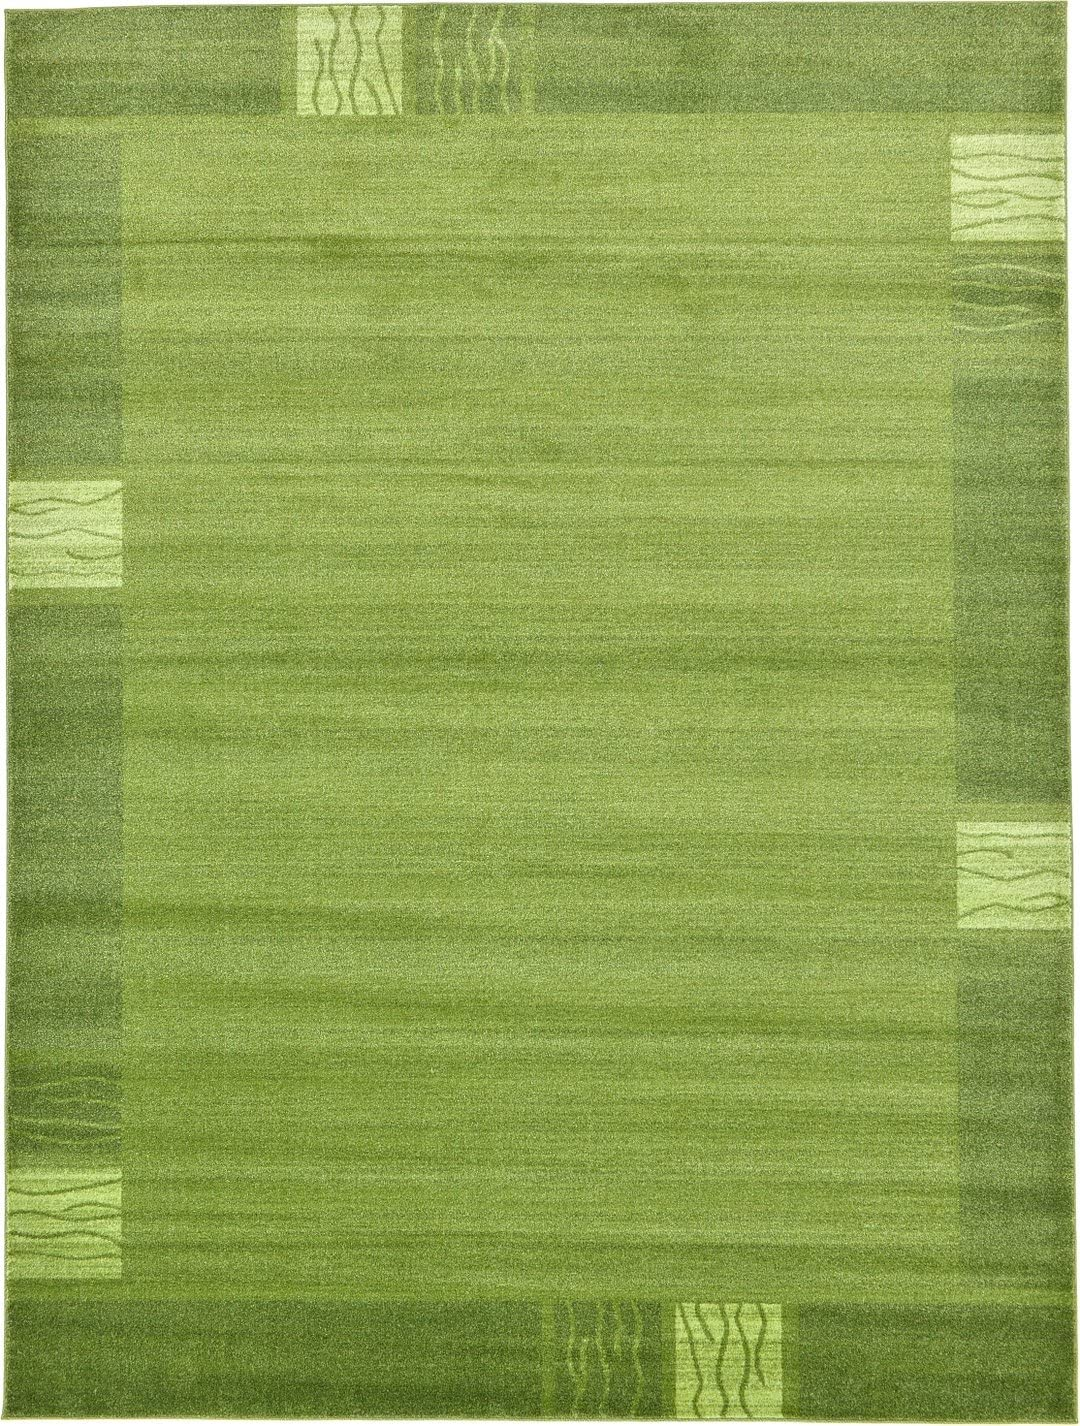 Over-Dyed Modern Vintage Rugs Light Green 9 x 12 FT Palma Collection Area Rug – Perfect for Any Place